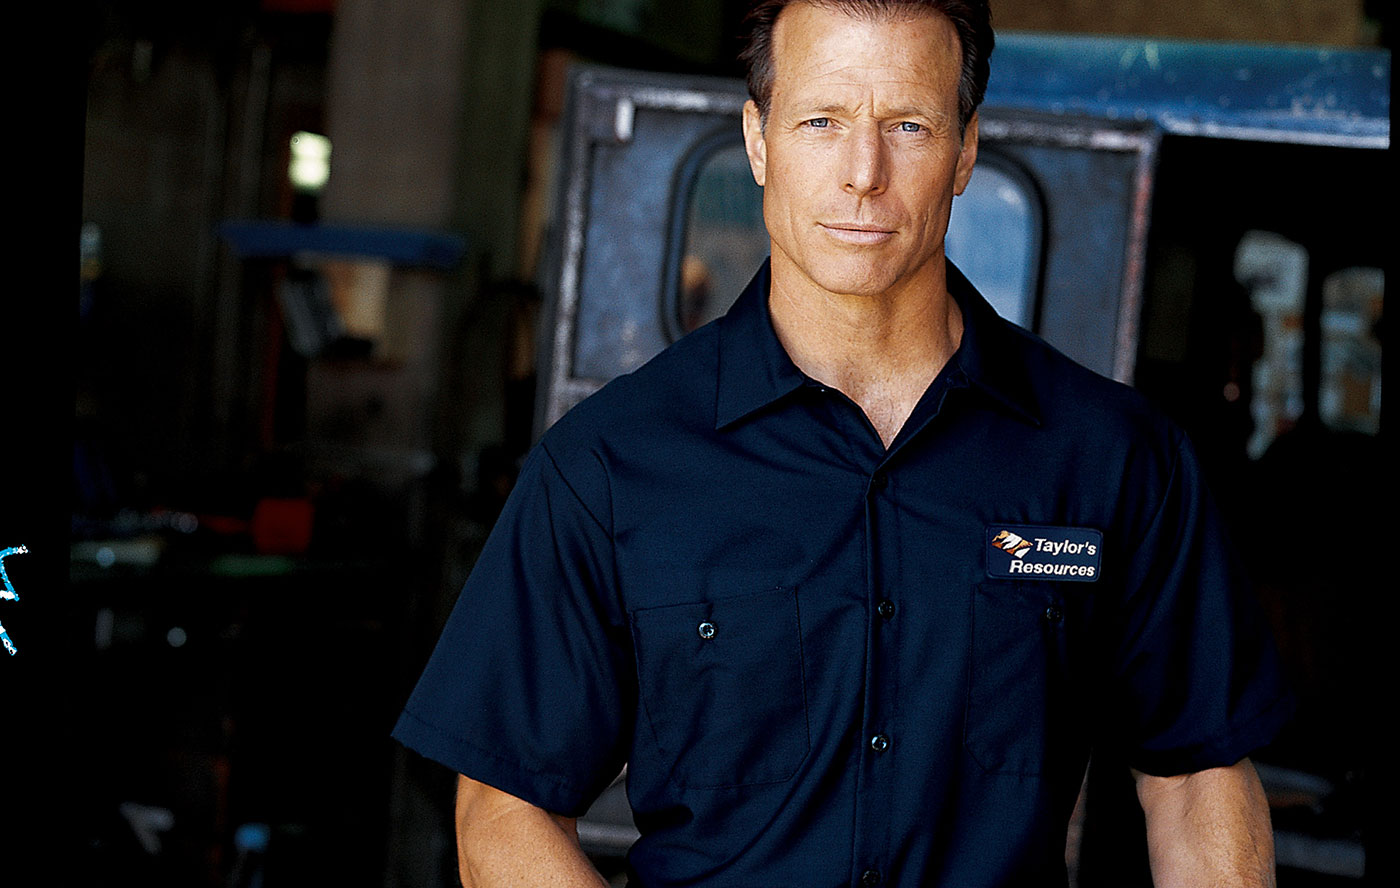 Mechanic in automotive coveralls